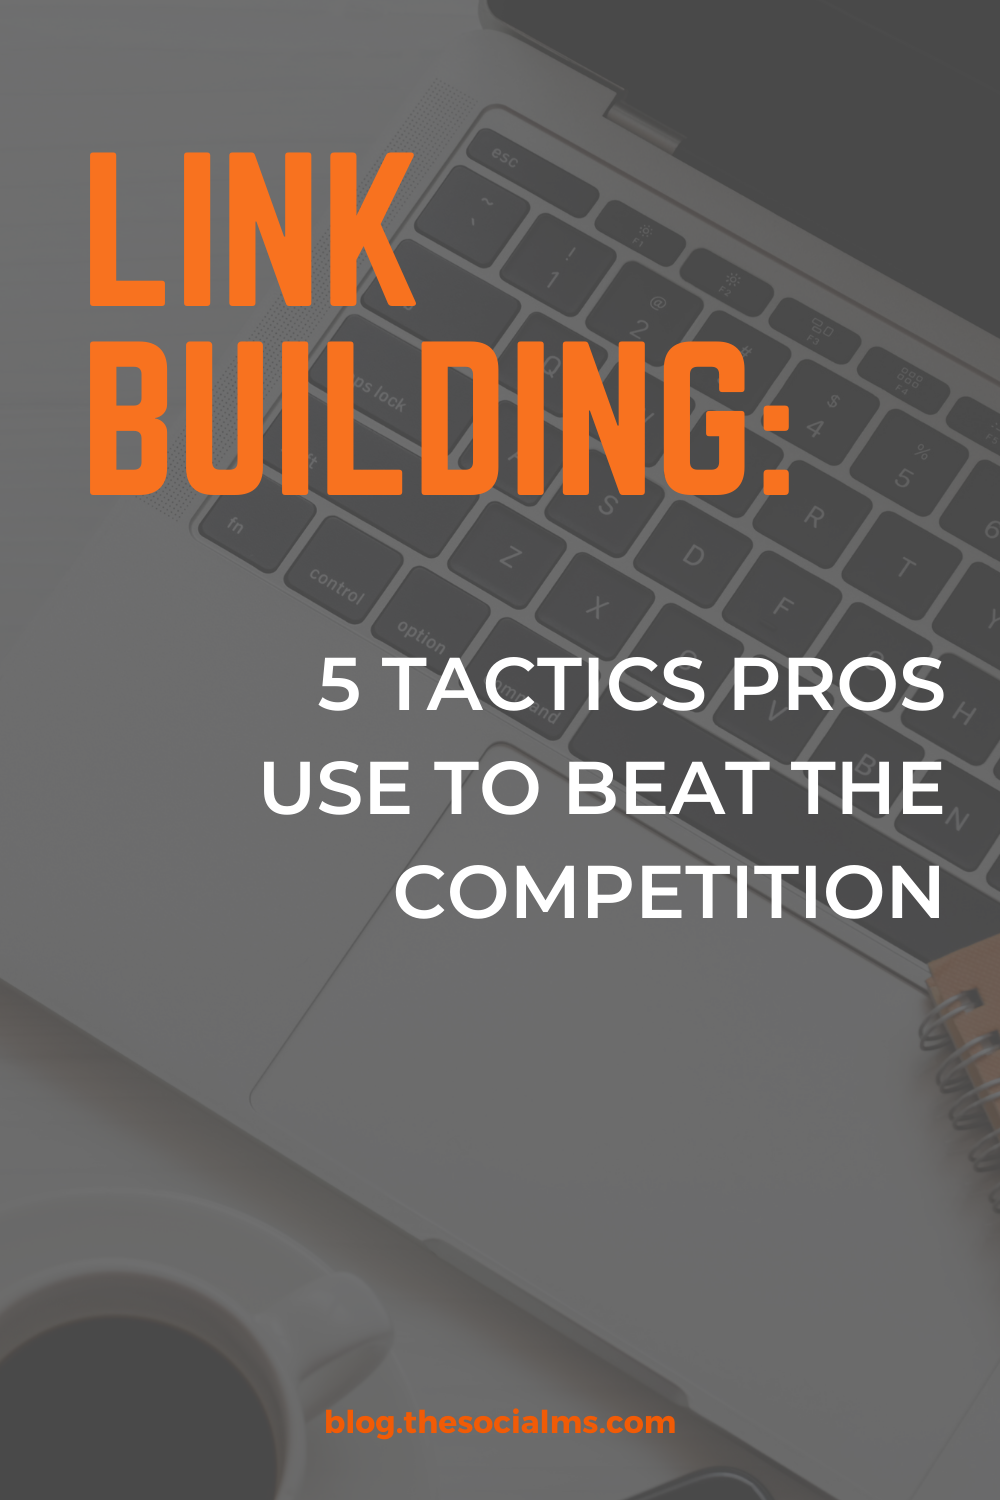 you have most likely exhausted all the standard link building tips. What you are looking for are advanced link building tactics. The one's SEO and online marketing professionals use to stay miles ahead of the competition. 5 advanced link-building tactics are the focus this article. #seo #linkbuilding #seotips #linkbuildingtactics #seohacks googlesearch #improverankings